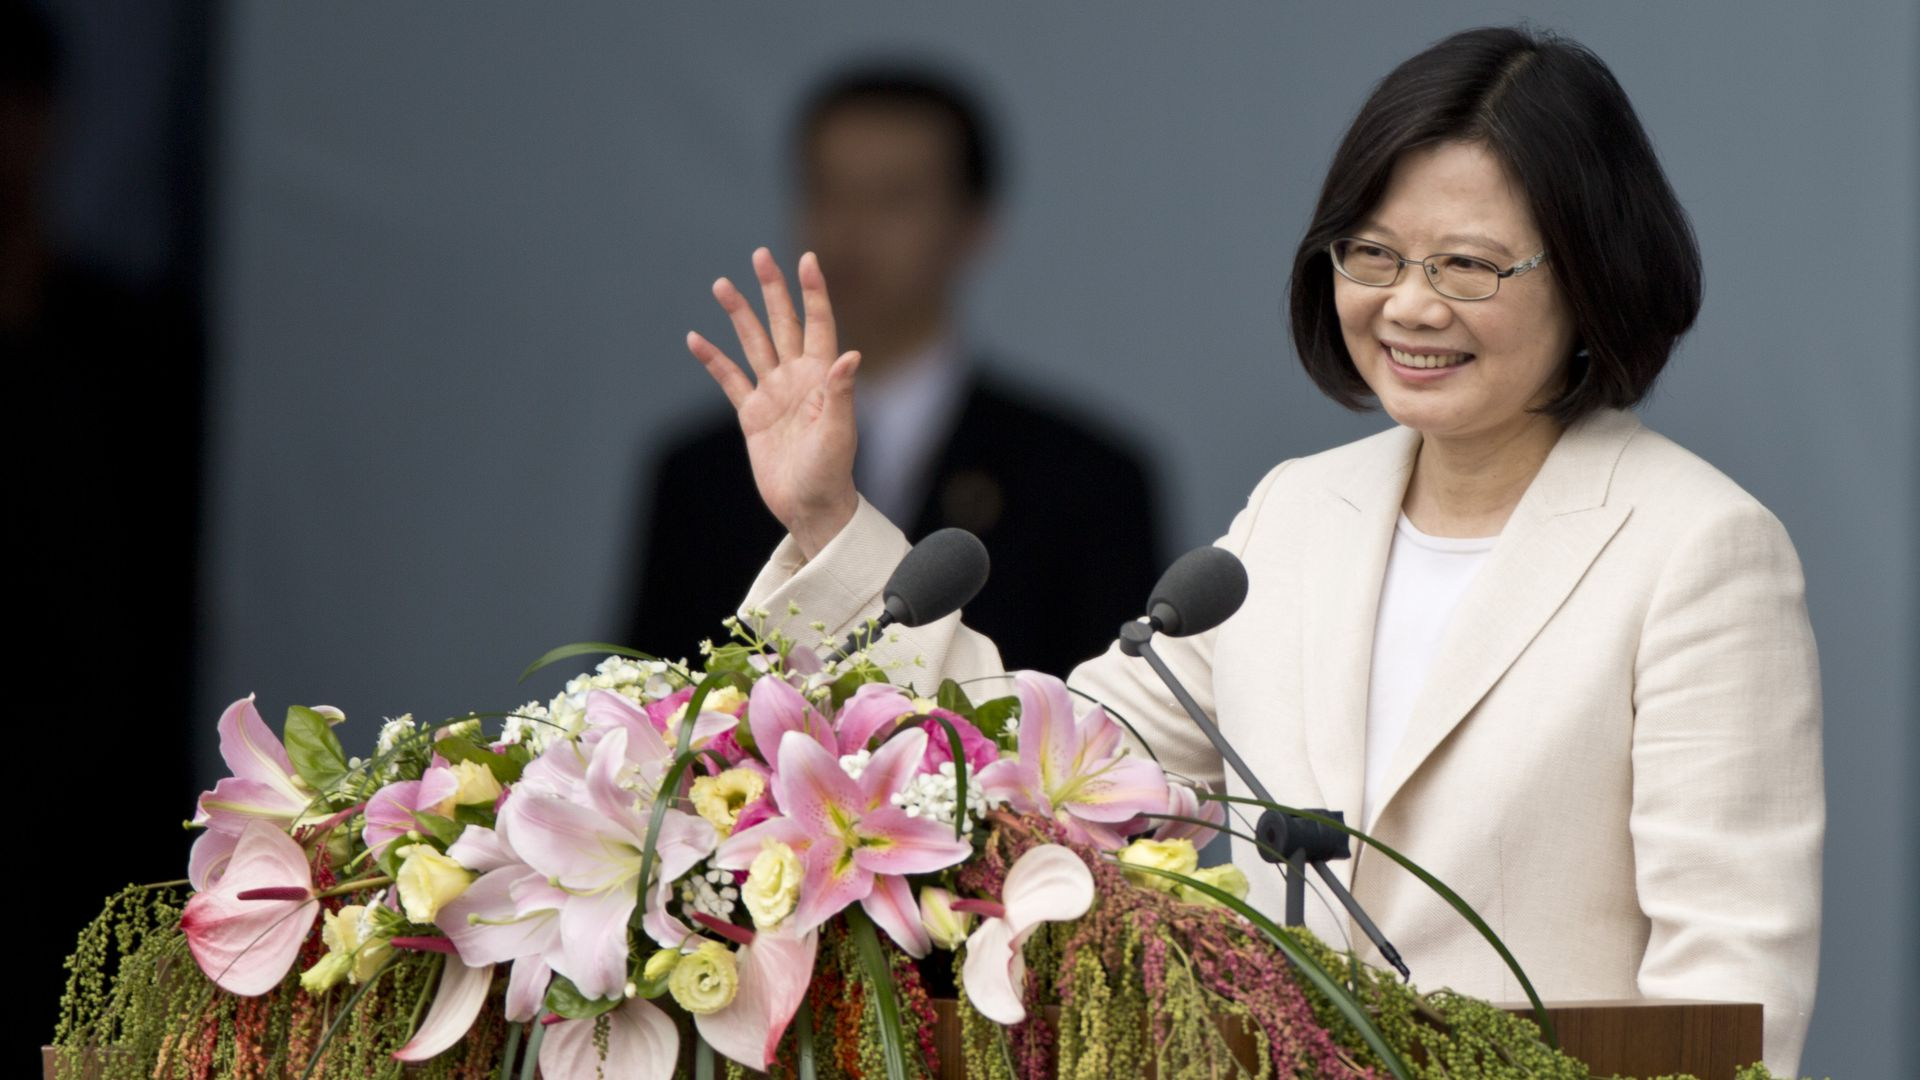 Taiwan Striving to Keep Caribbean Allies Beyond China's Reach